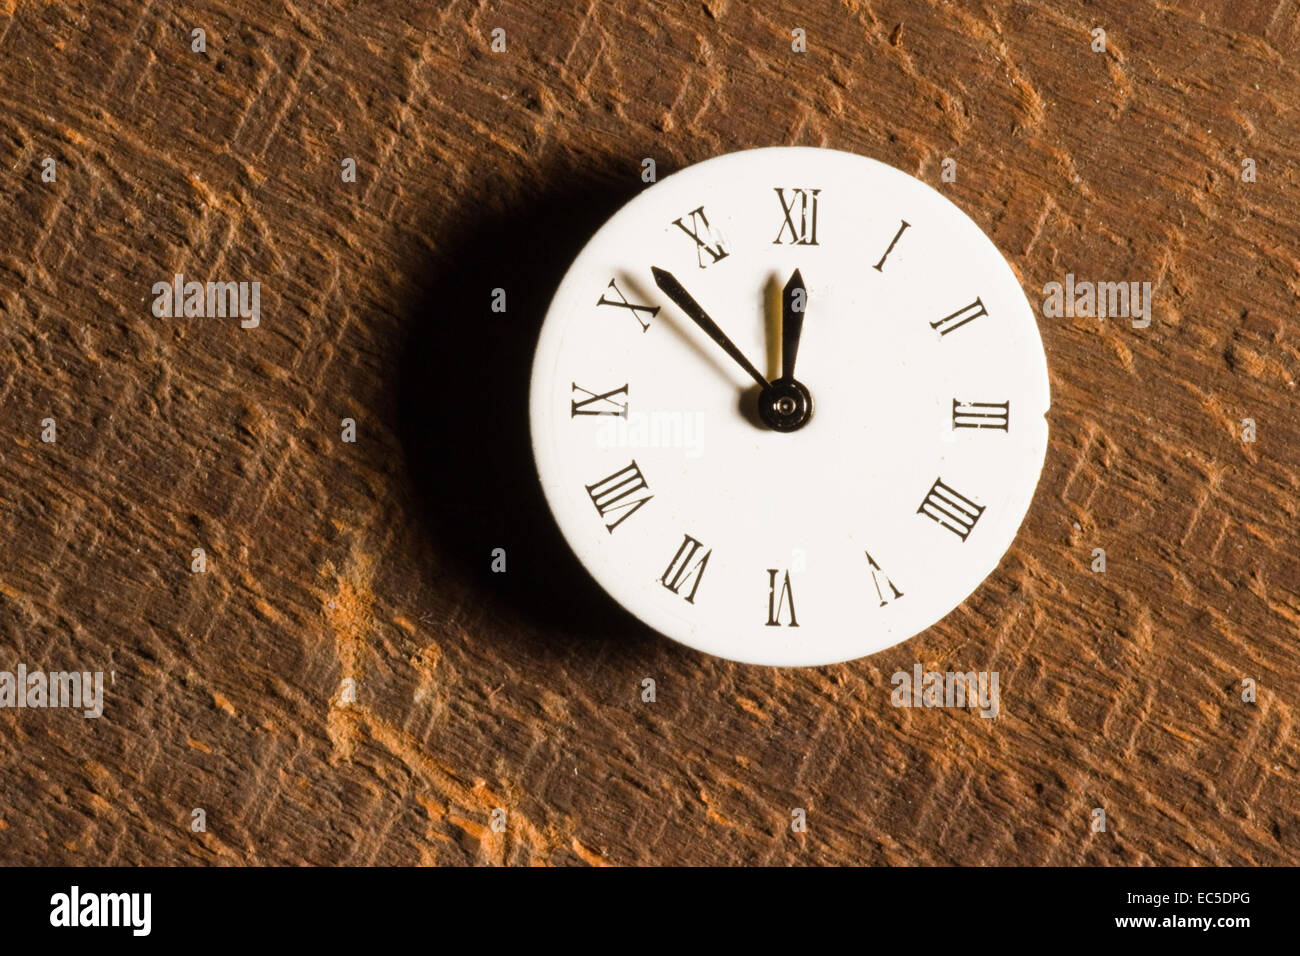 old watchface on rough wooden structure - Stock Image